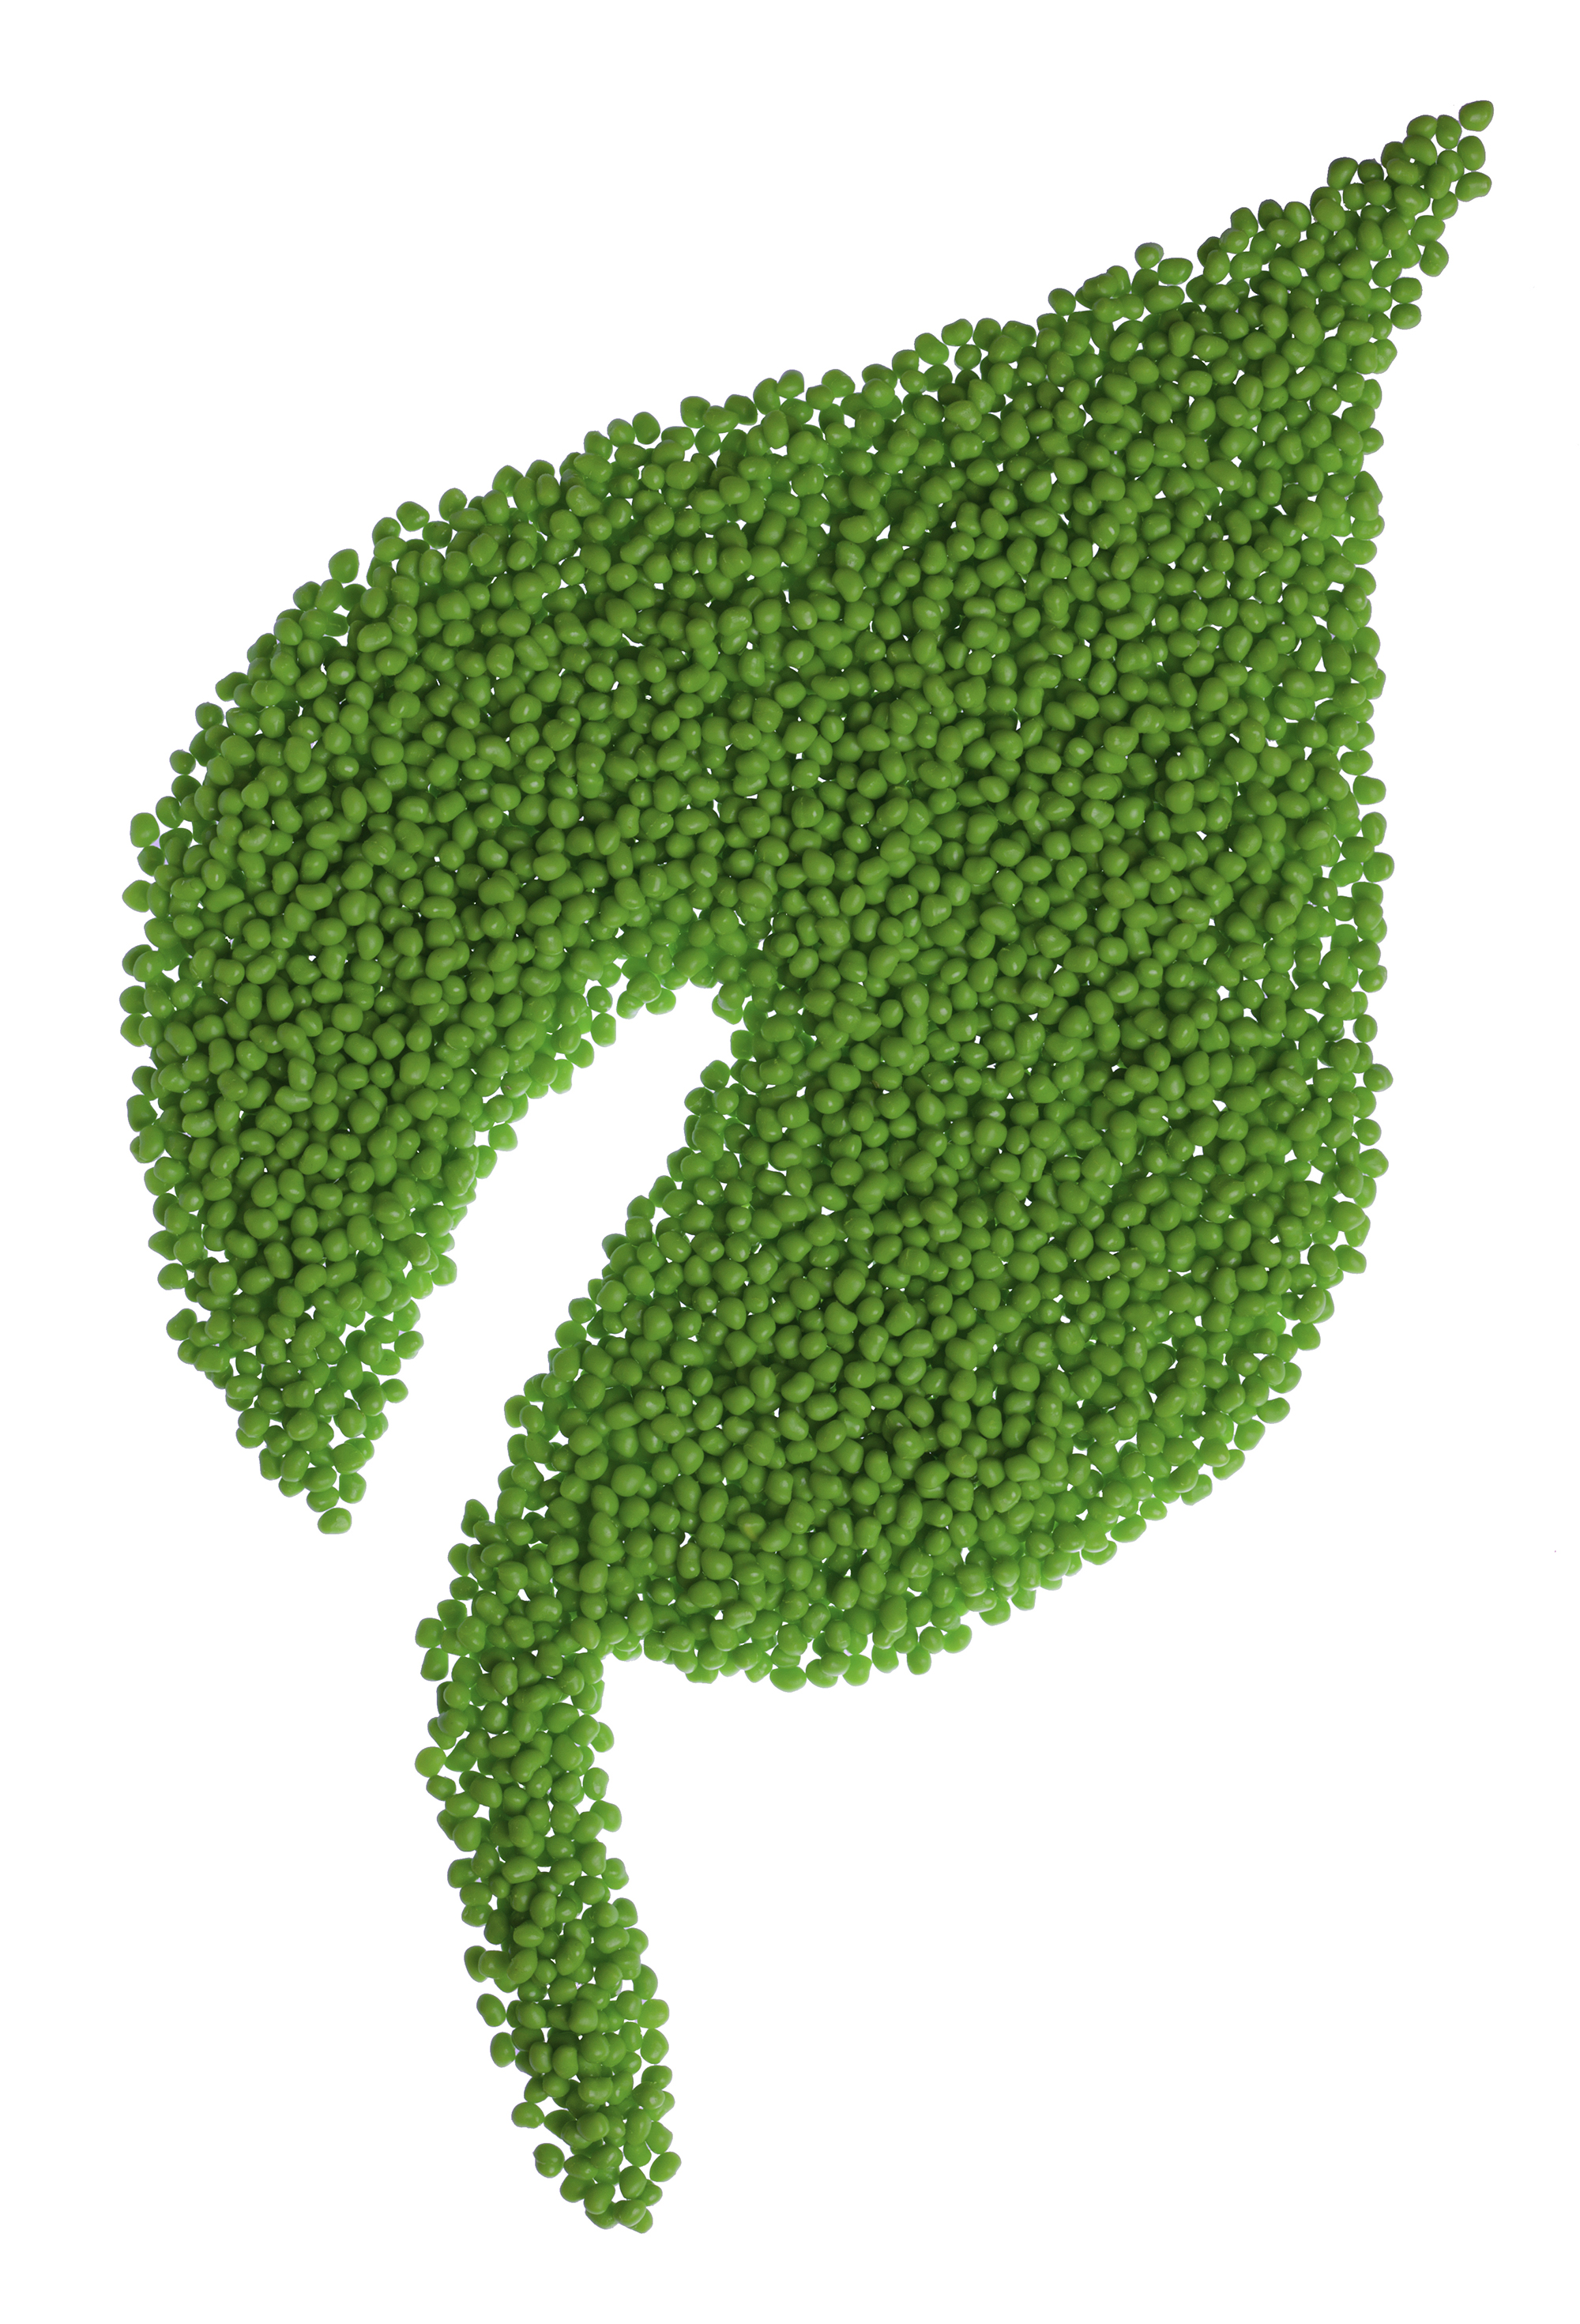 The Dryflex Green family of biobased TPEs includes grades based on TPS and TPO technologies, with amounts of renewable content to over 90% (ASTM D 6866-12) and hardness from 15 Shore A to 60 Shore D. (Source: Hexpol TPE)